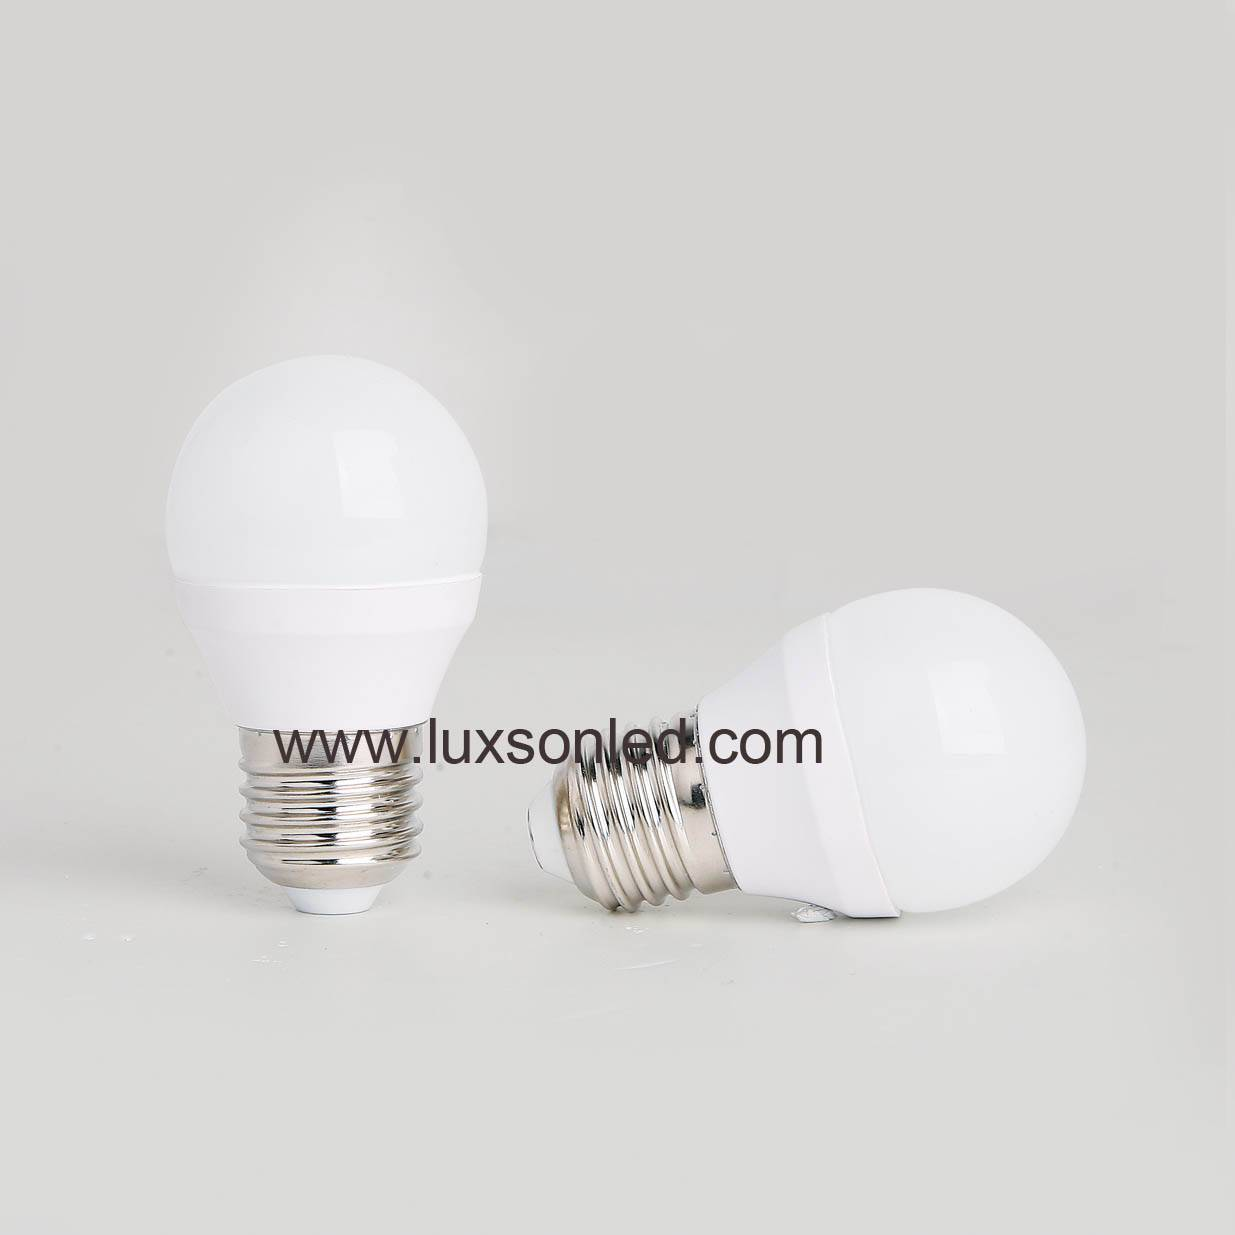 LED Bulb G45 3W 4W 6W LED Lamp LED Light Bulb